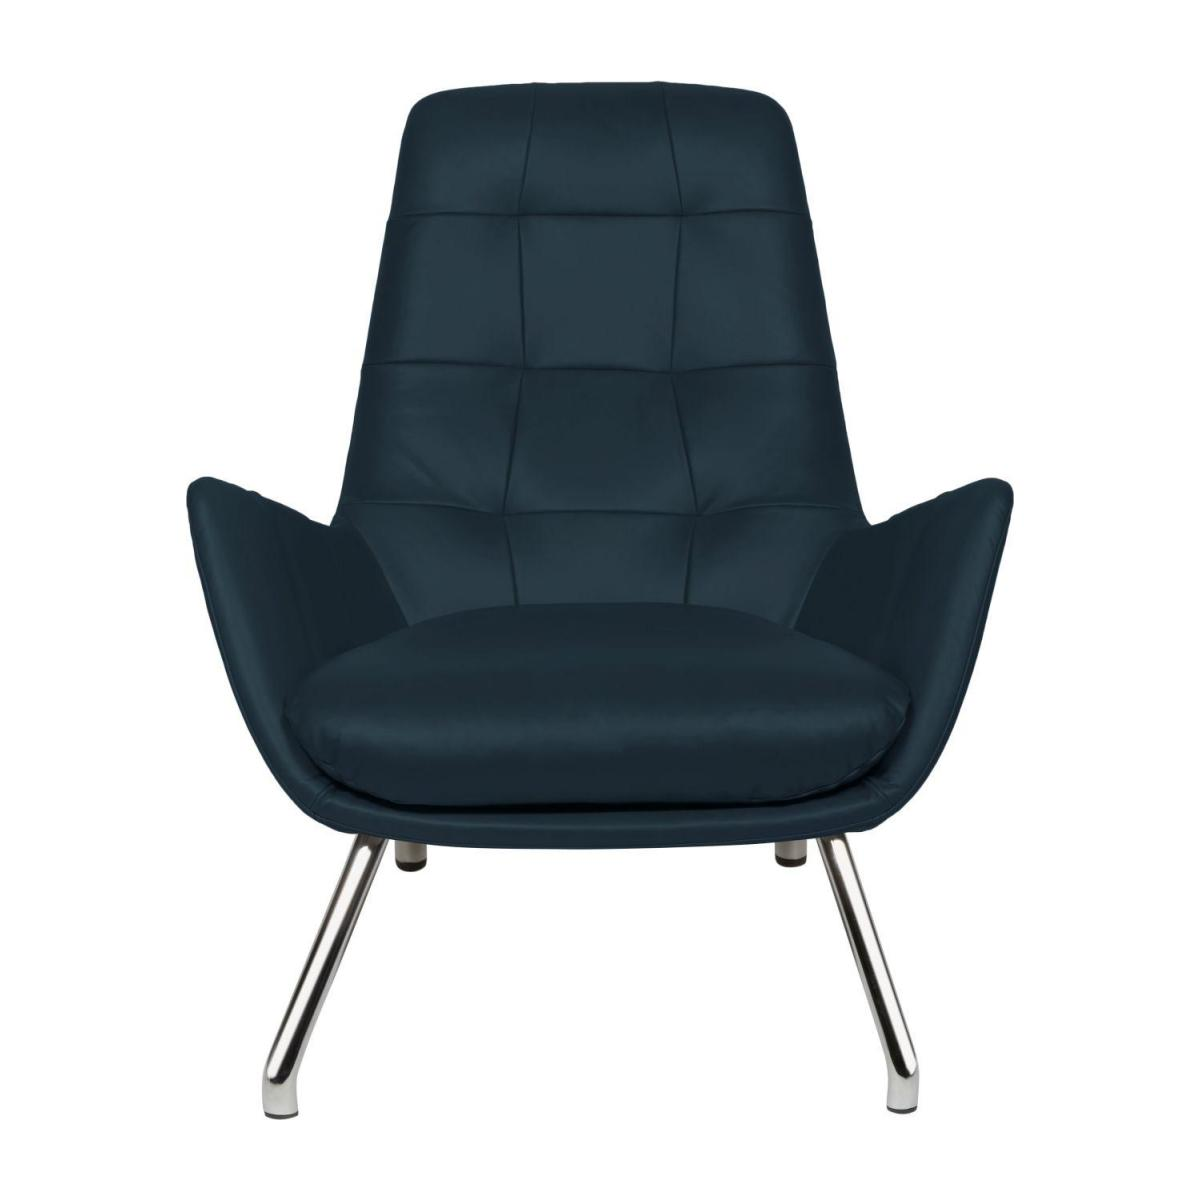 Armchair in Vintage aniline leather, denim blue with chromed metal legs n°5